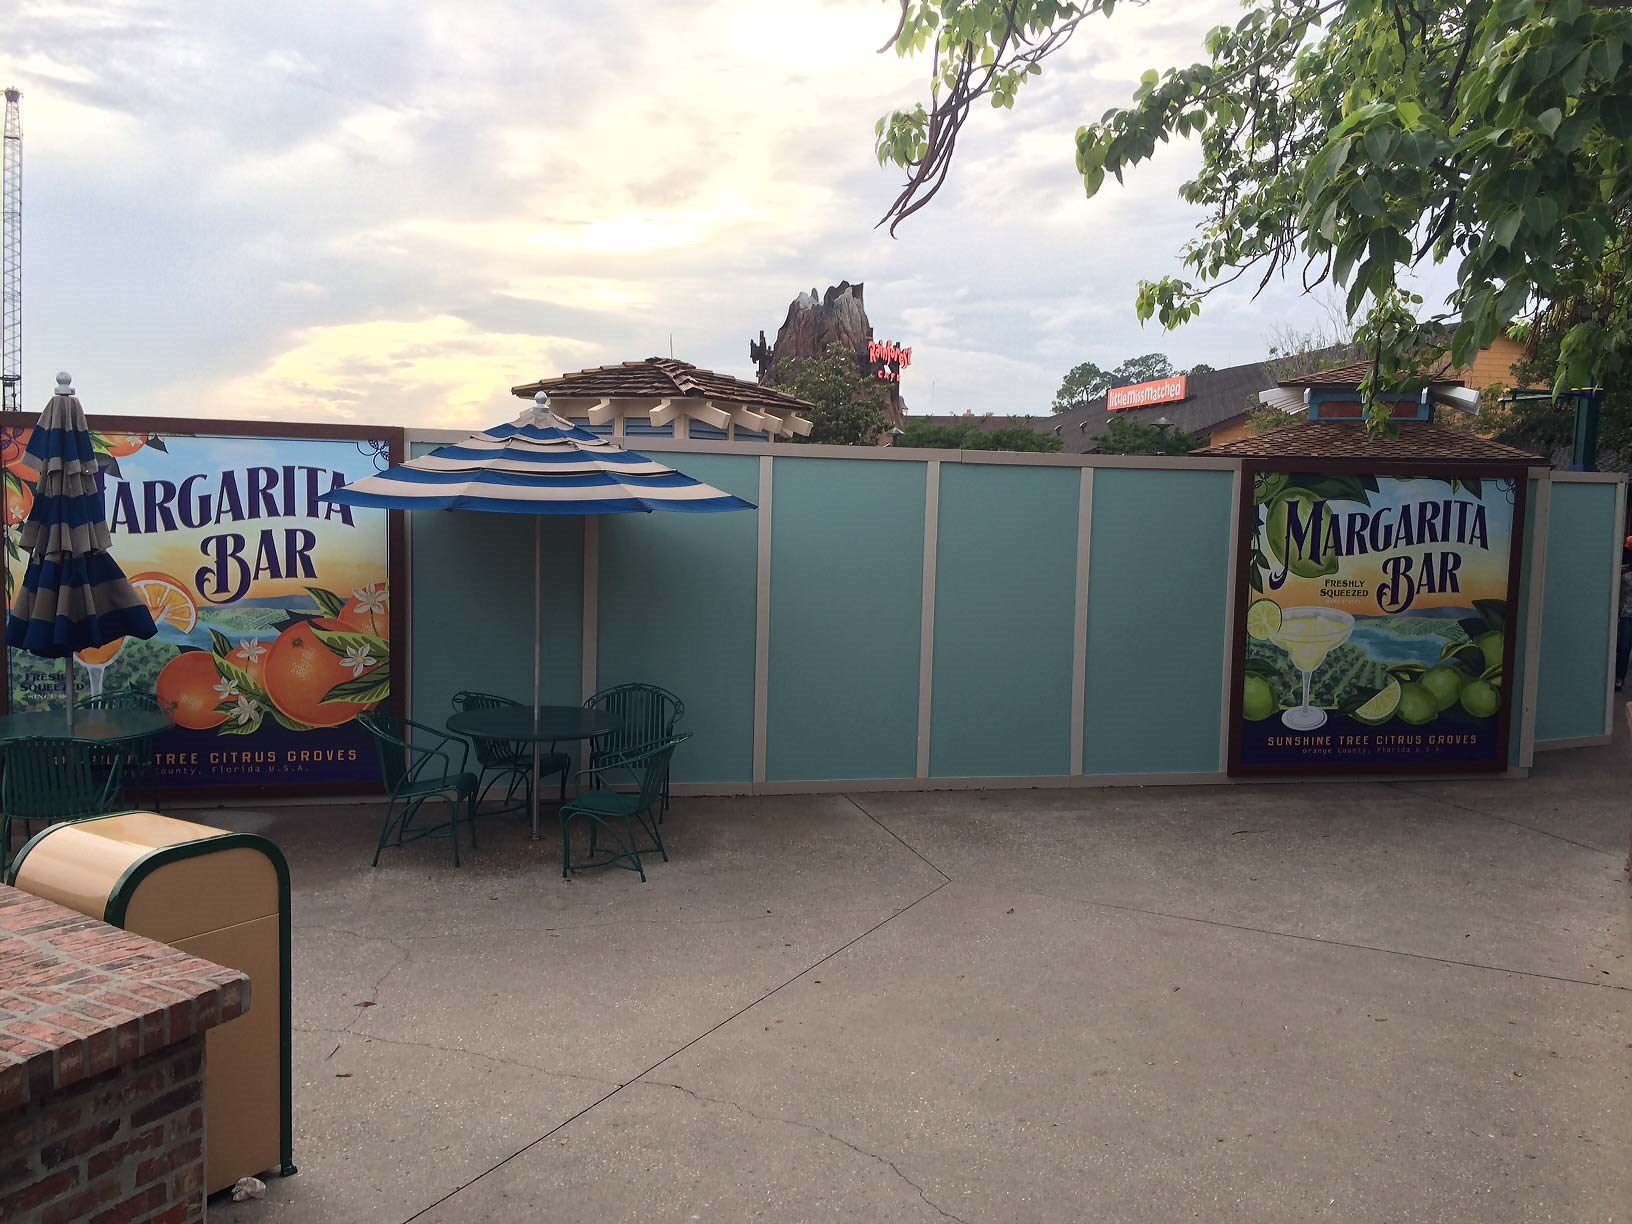 Cap n Jacks Margarita Bar closed for refurbishment